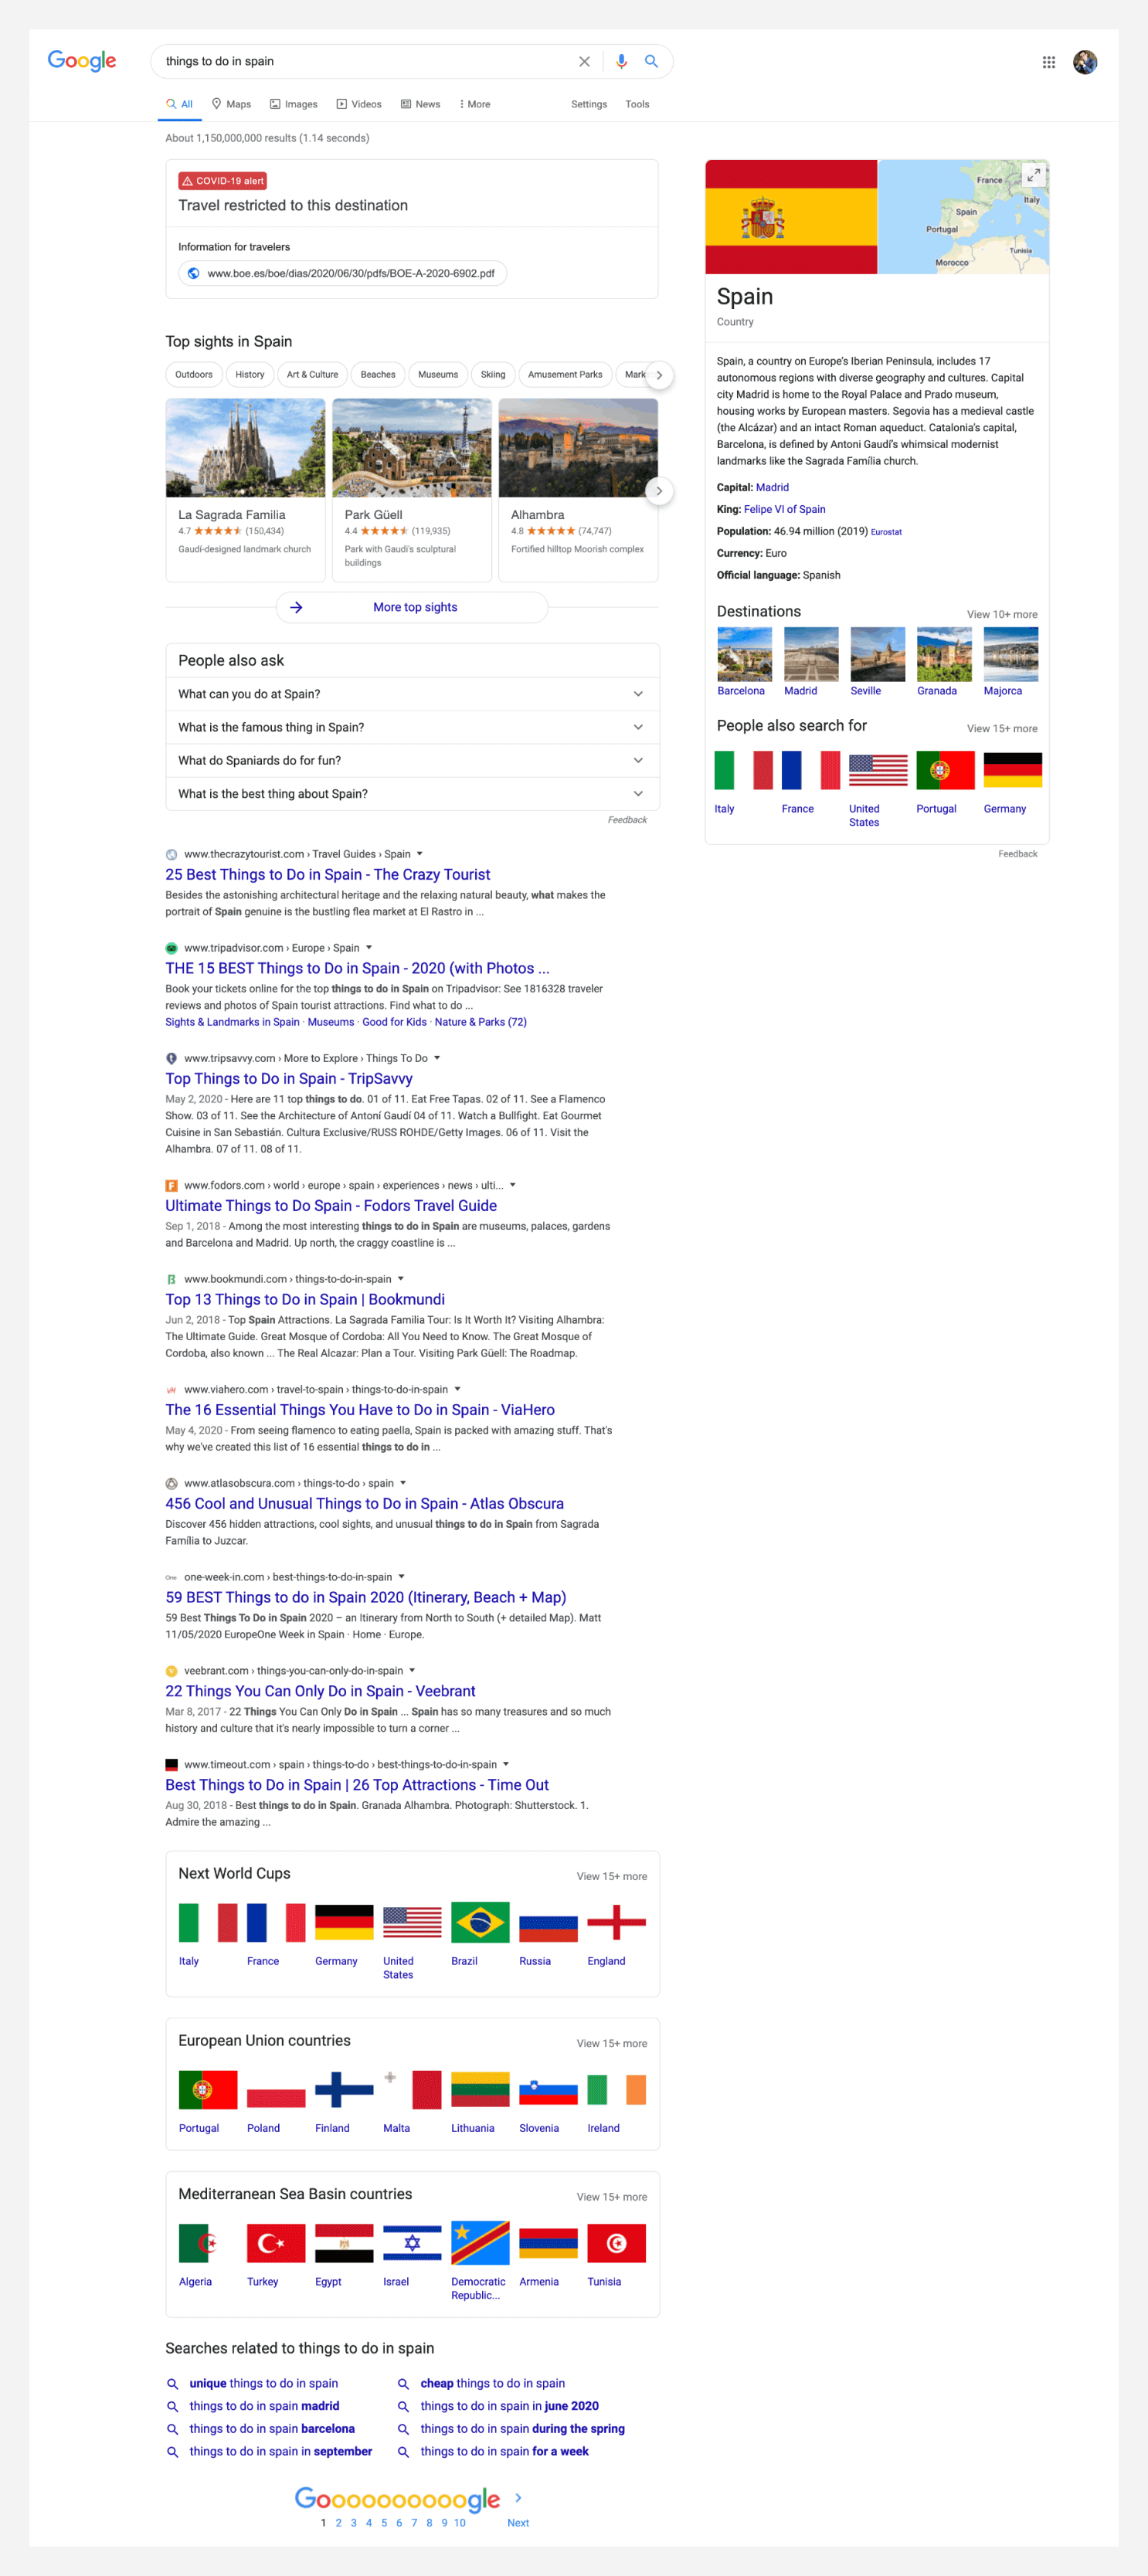 Search engine result page for things to do in spain.